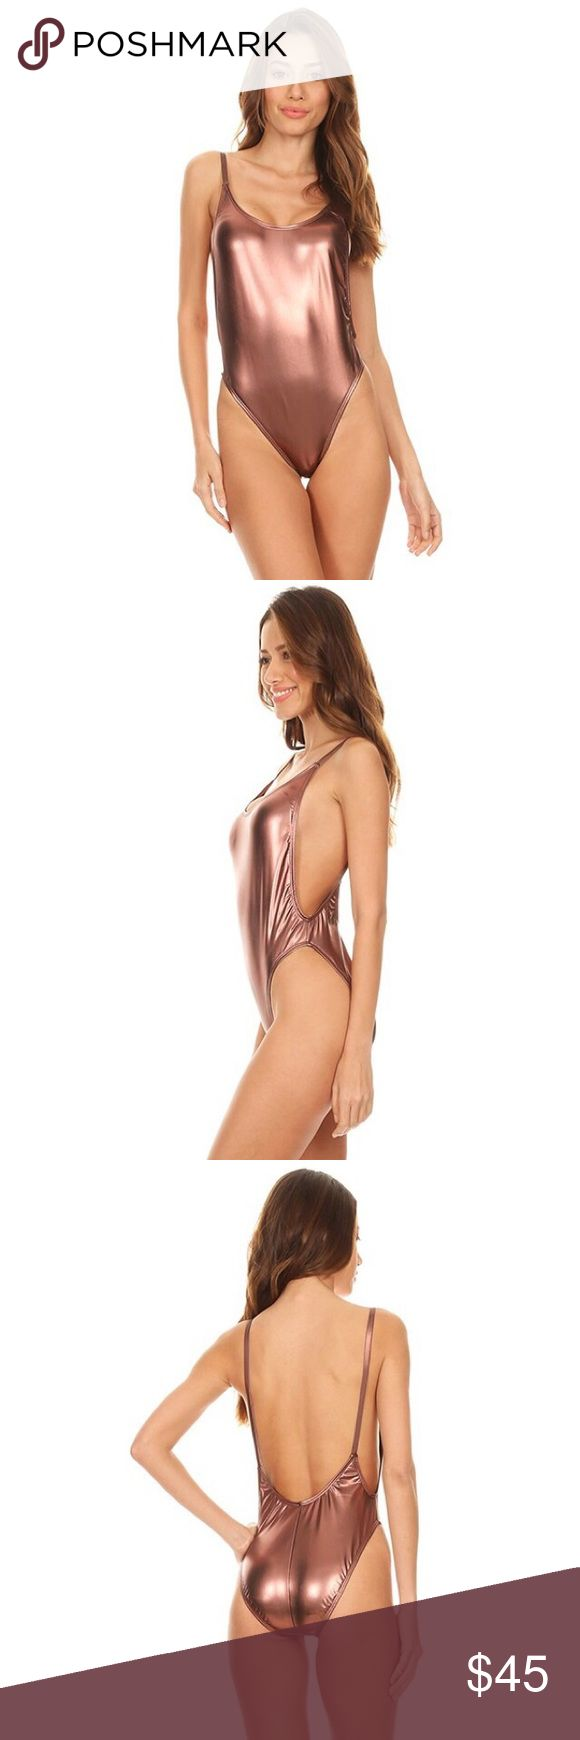 BRONZED BEAUTY Bathing suit Loving this rose gold color and it will go so perfectly with that tanned look you're trying to achieve. One piece high cut vintage swimsuit. Cheeky back bottom.  ➖MATERIAL: Nylon & Spandex ➖MADE IN USA ▫️PRICE FIRM Swim One Pieces